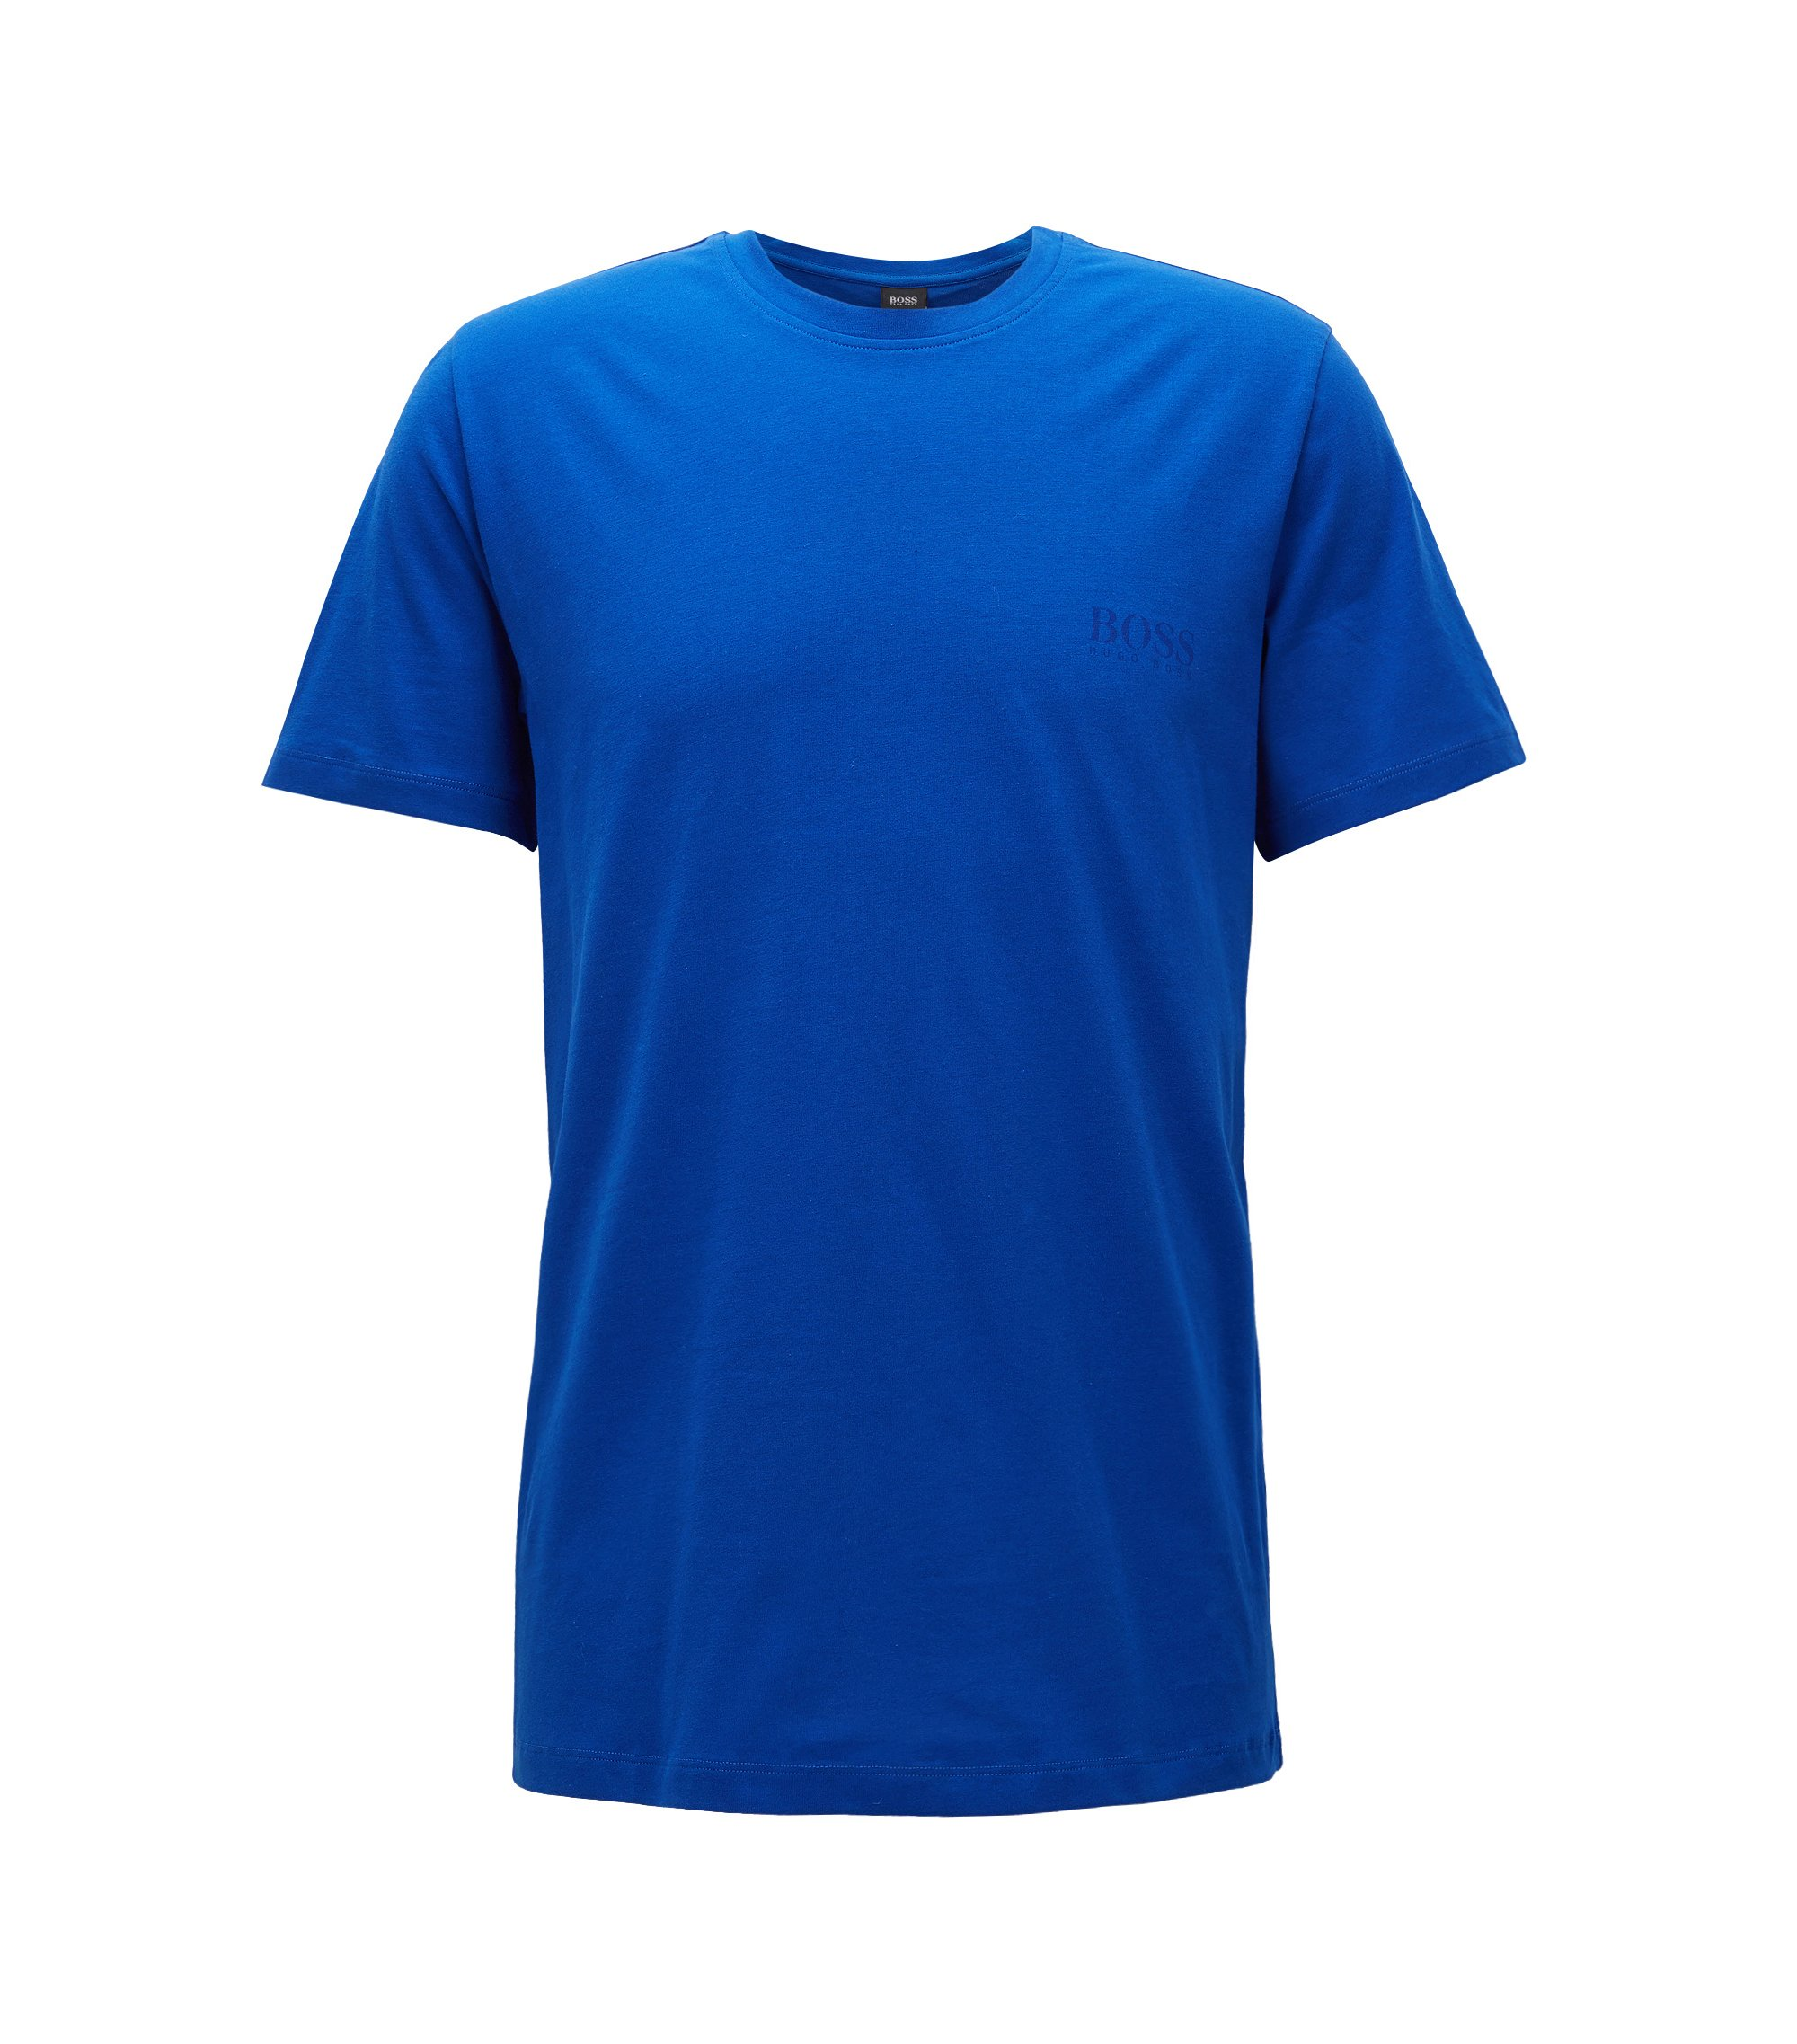 Relaxed-Fit T-Shirt aus Baumwolle, Blau